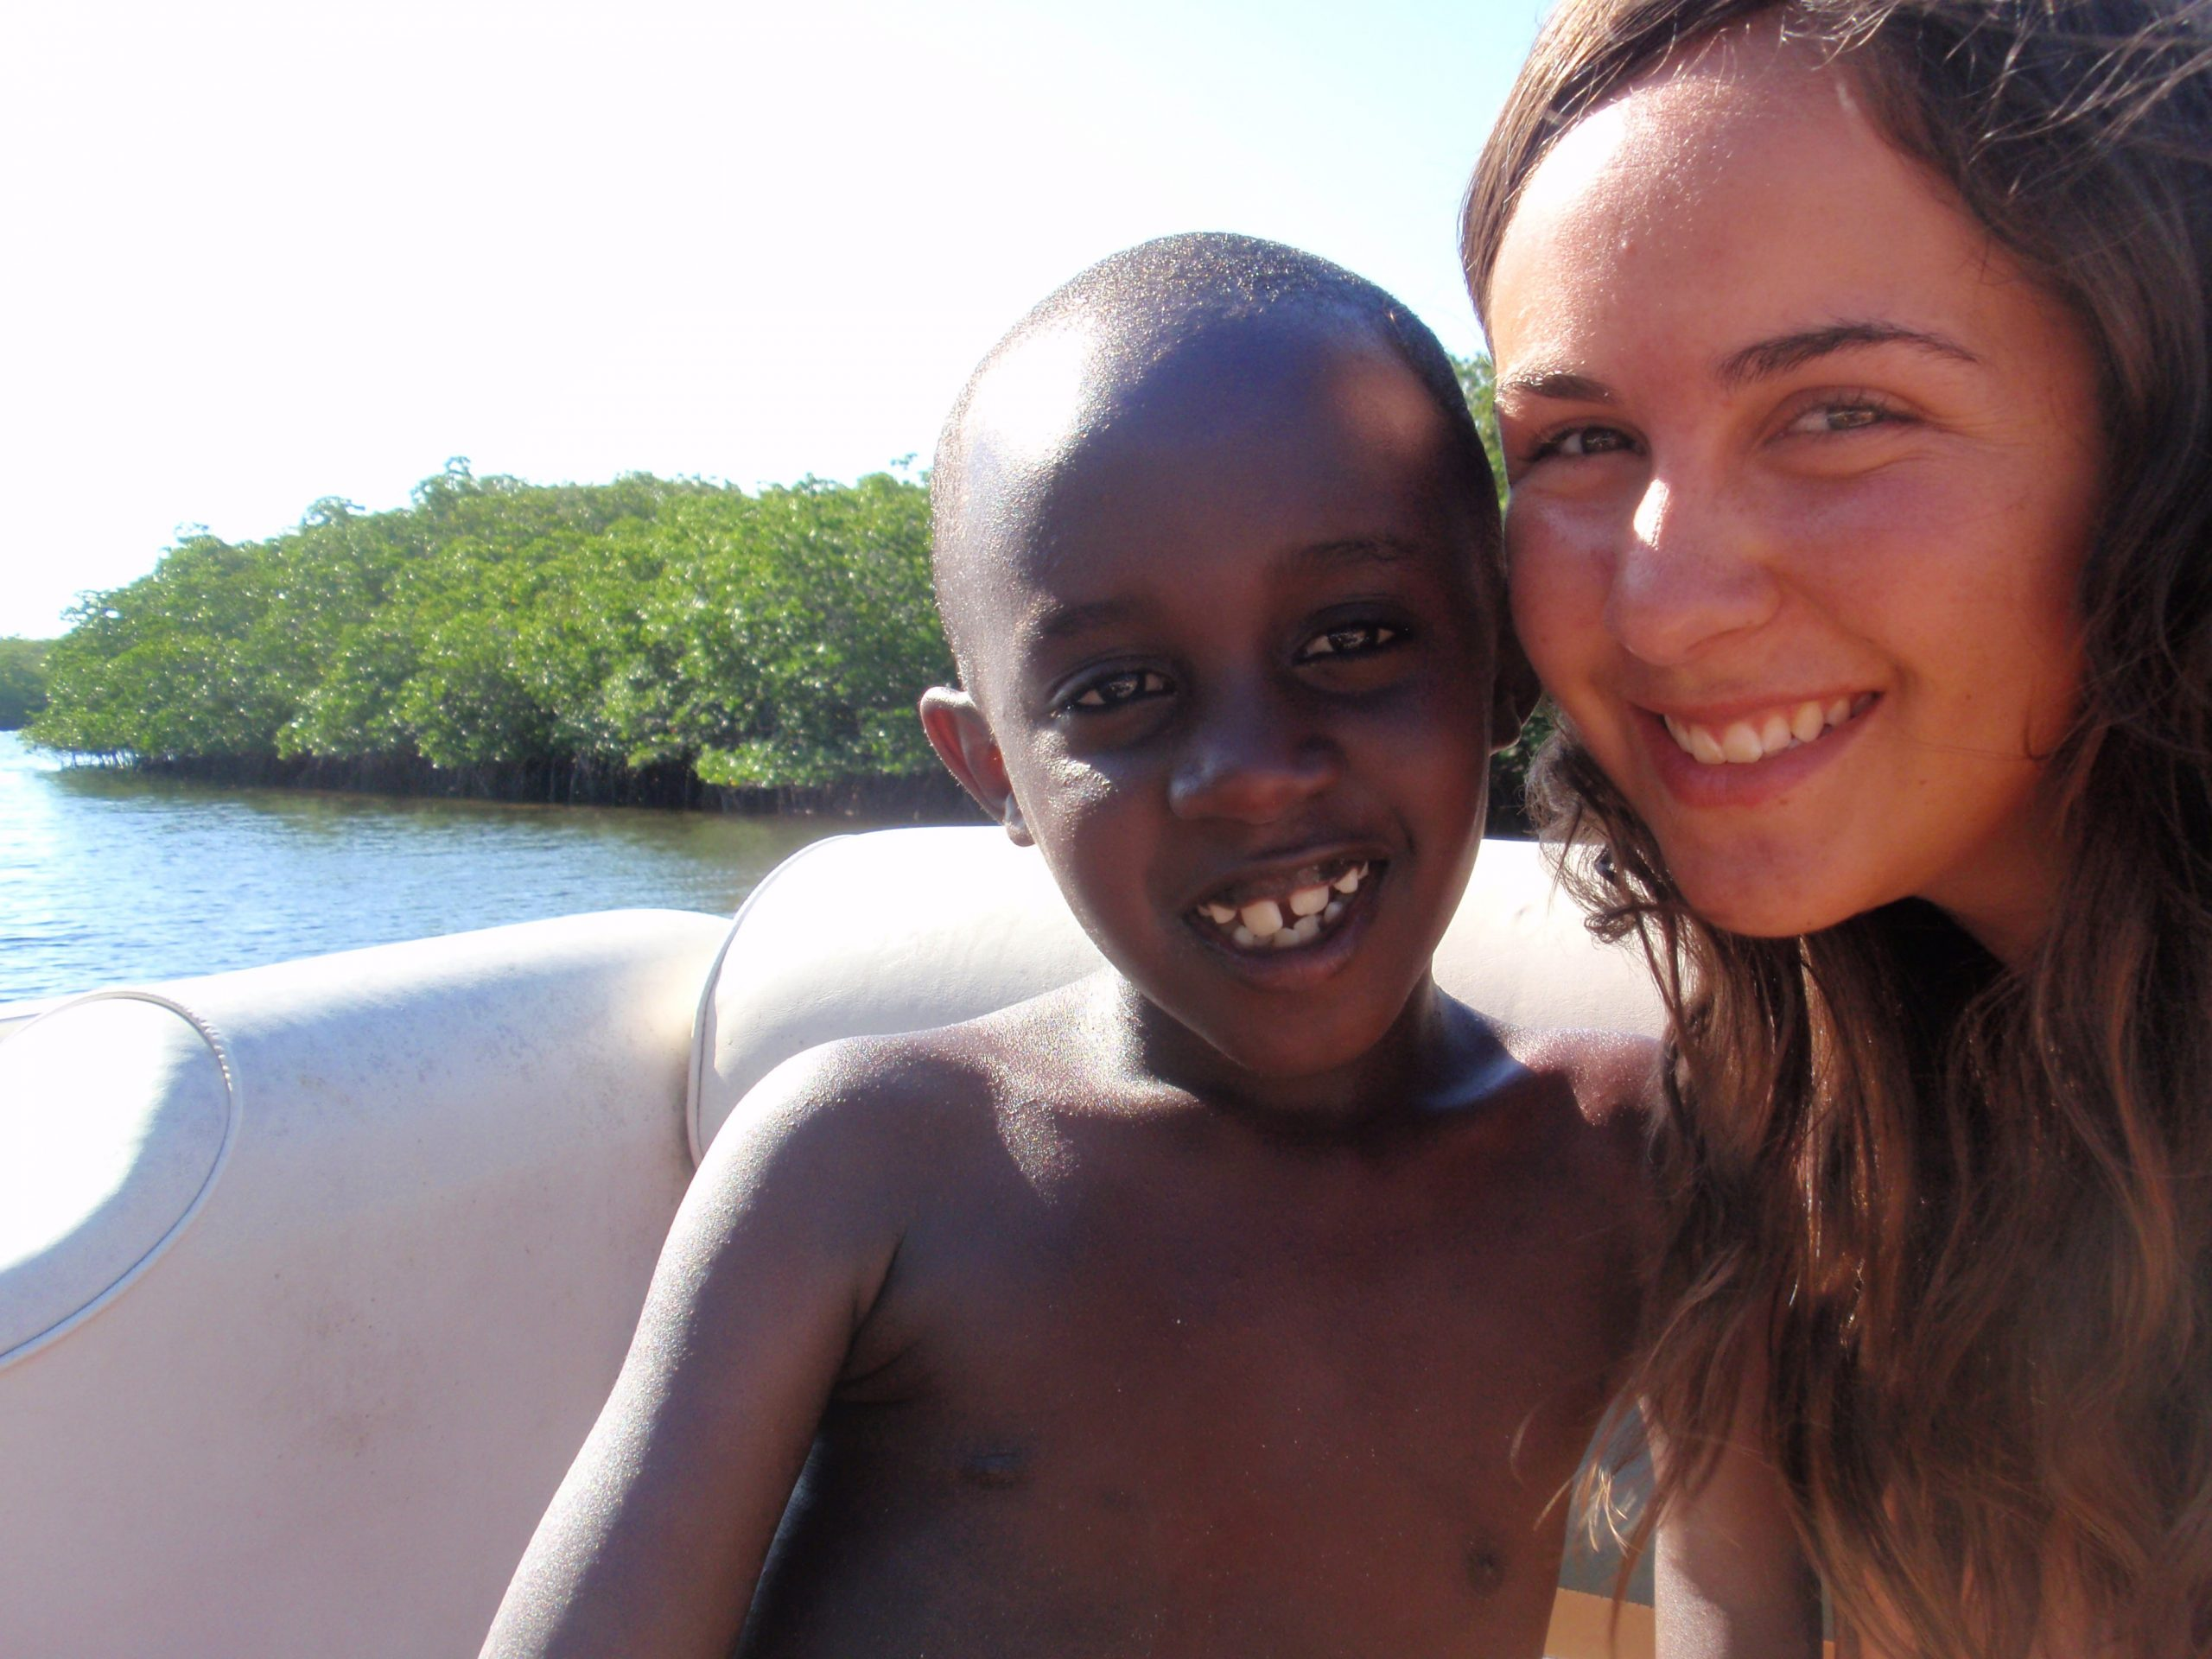 Laura Schlabach in Kenya with young boy